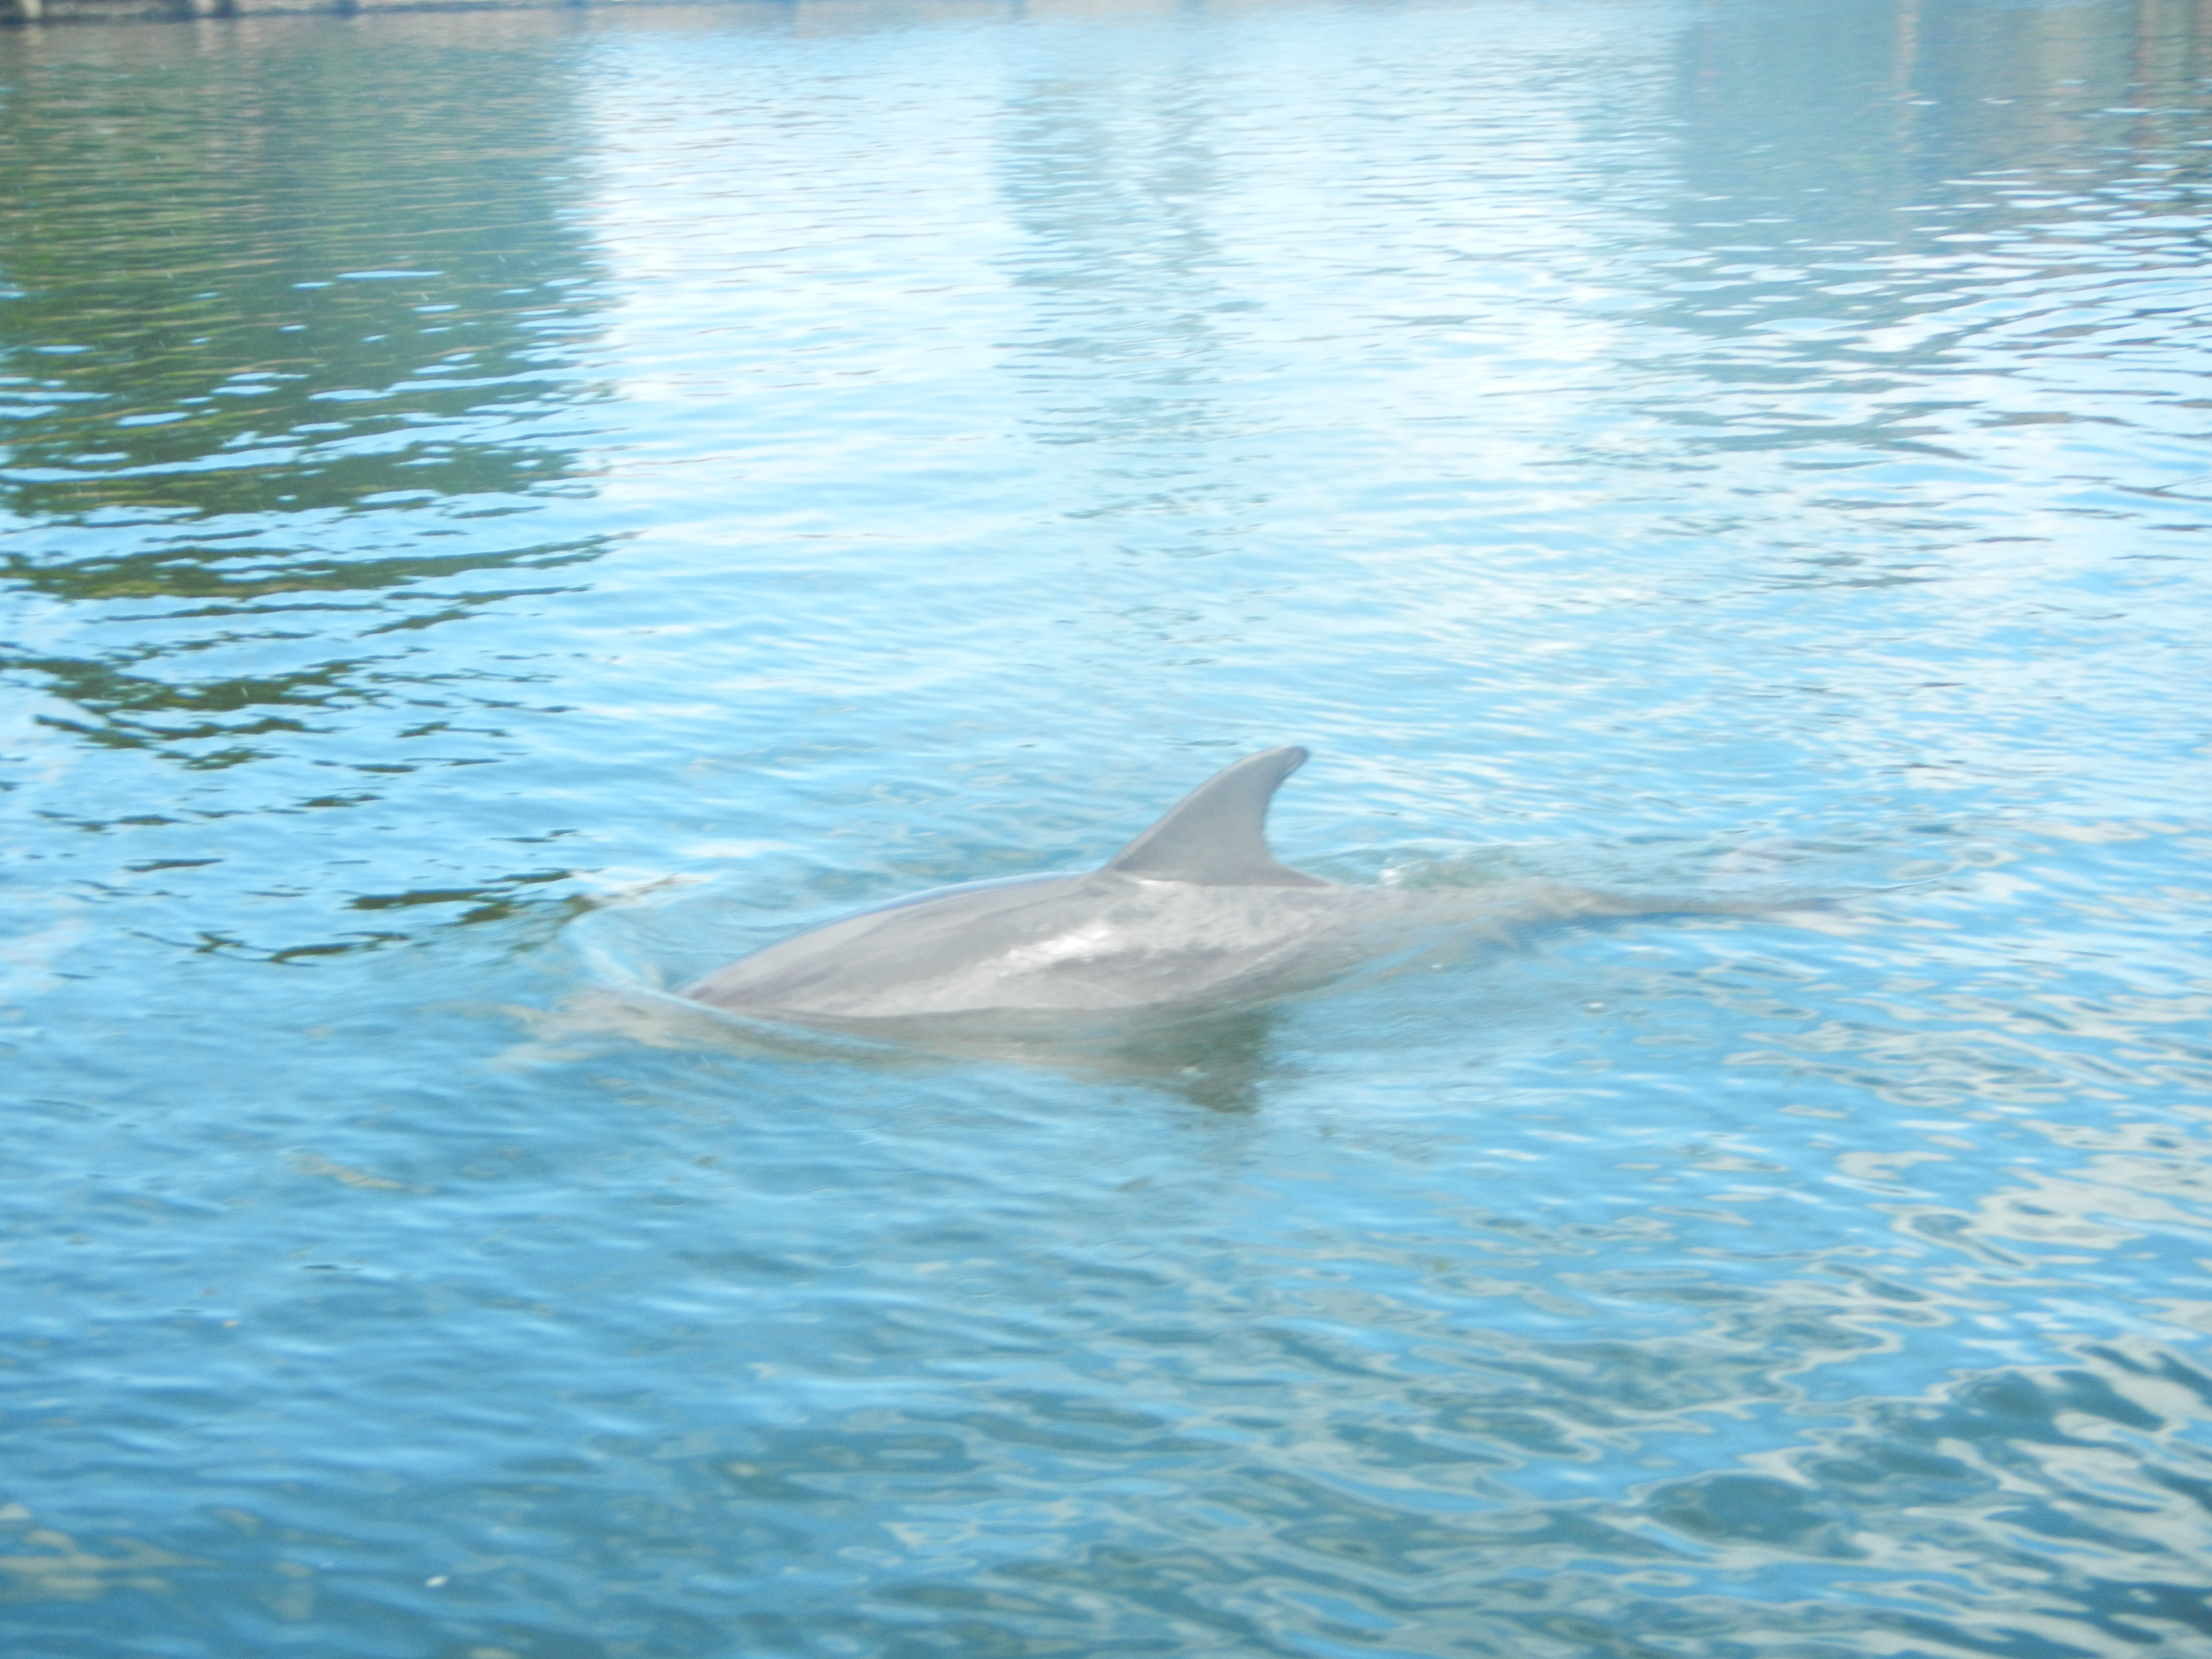 Beached dolphins - photo#35